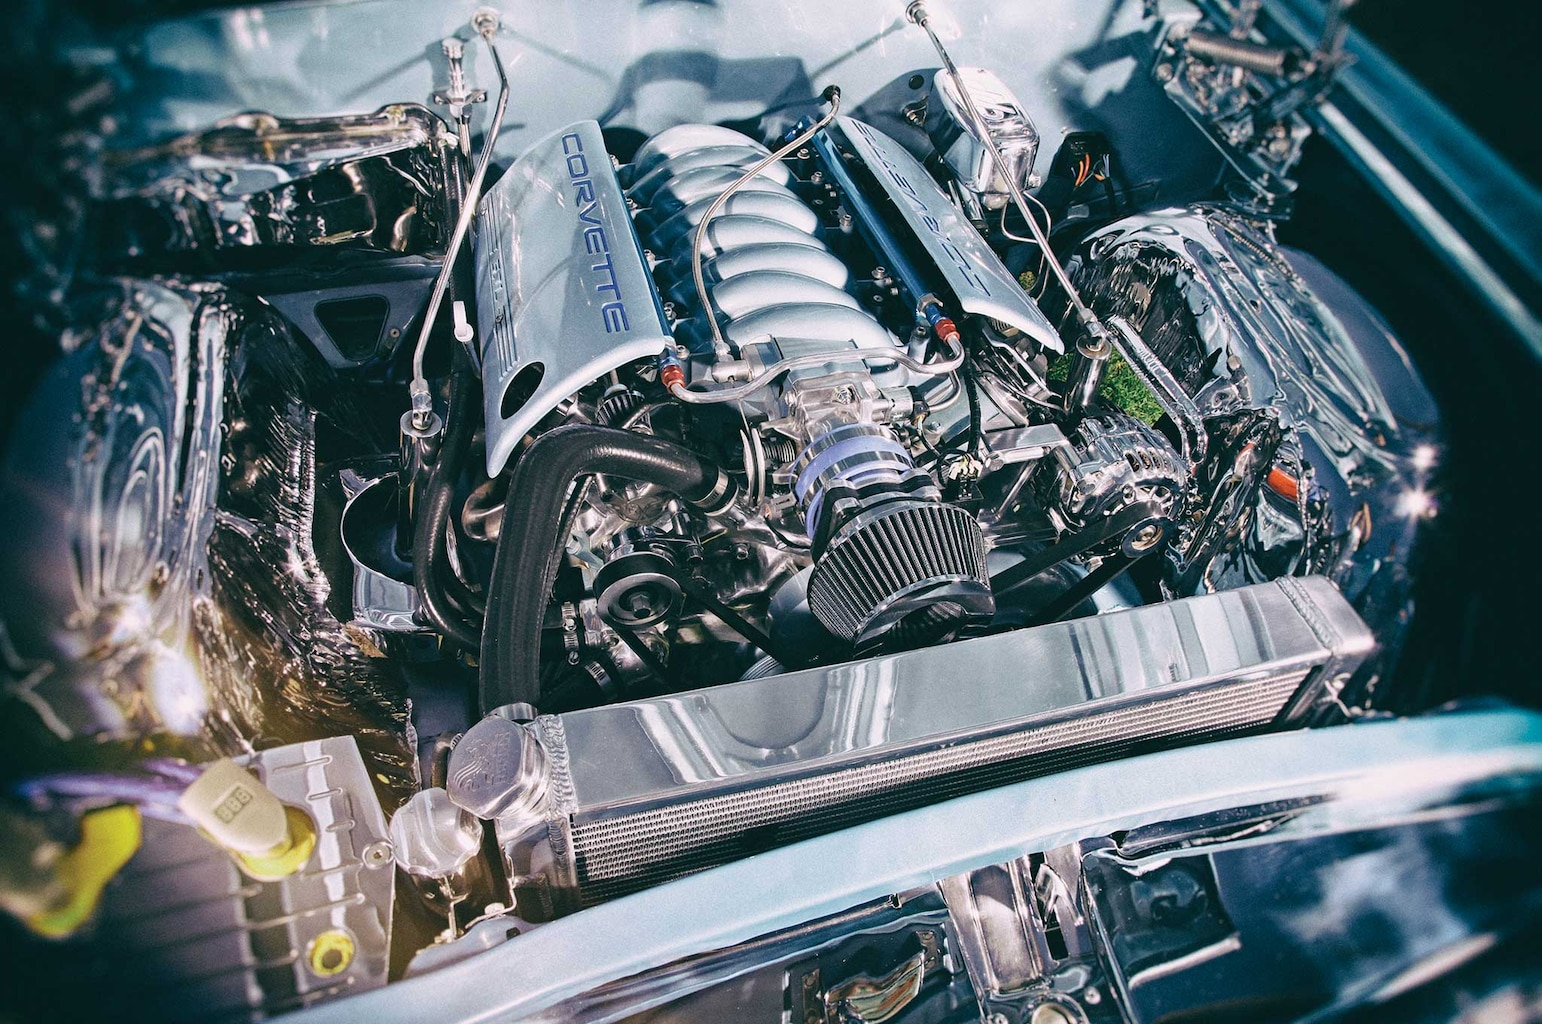 1963 chevrolet impala ls1 engine 005